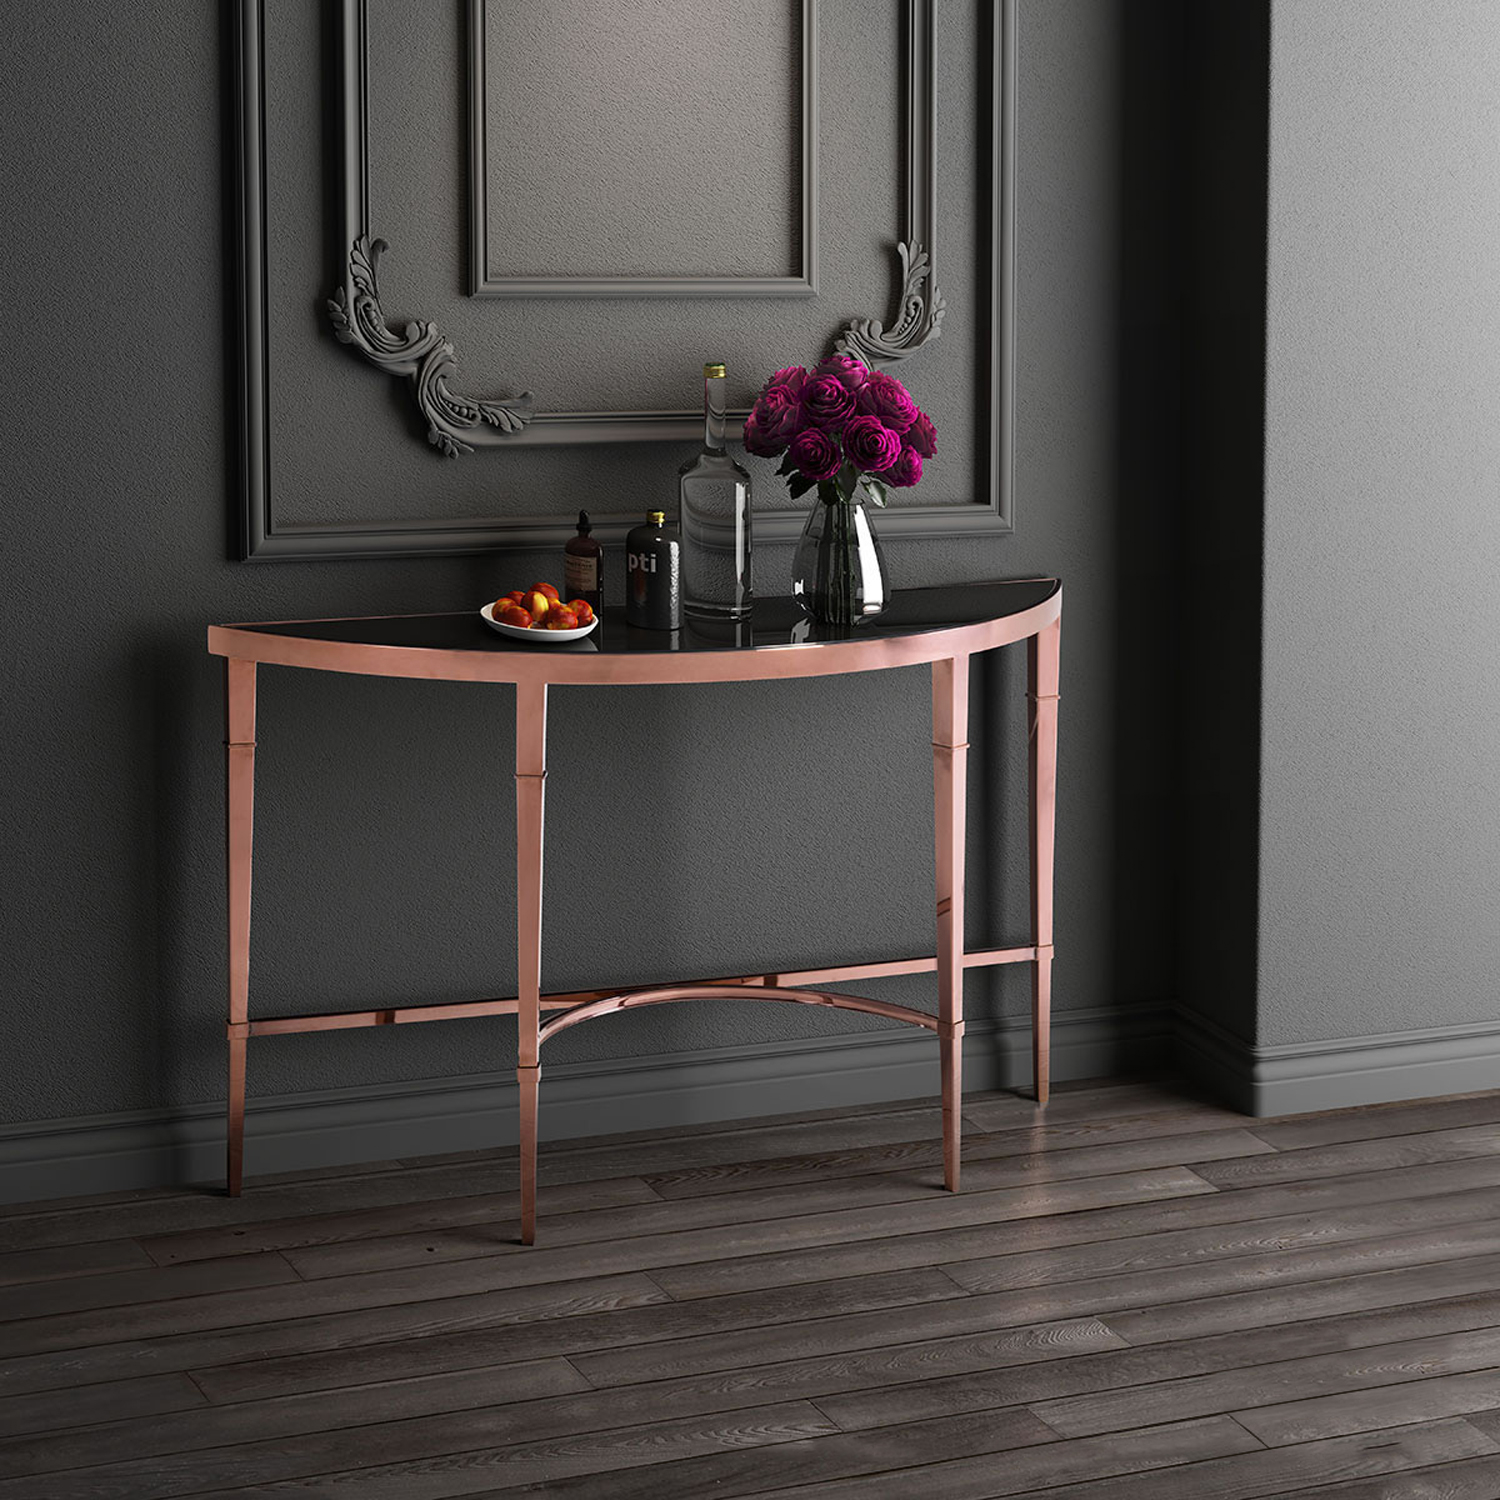 Elite Half Moon Console Table - Rose Gold and Black - ZM-100348